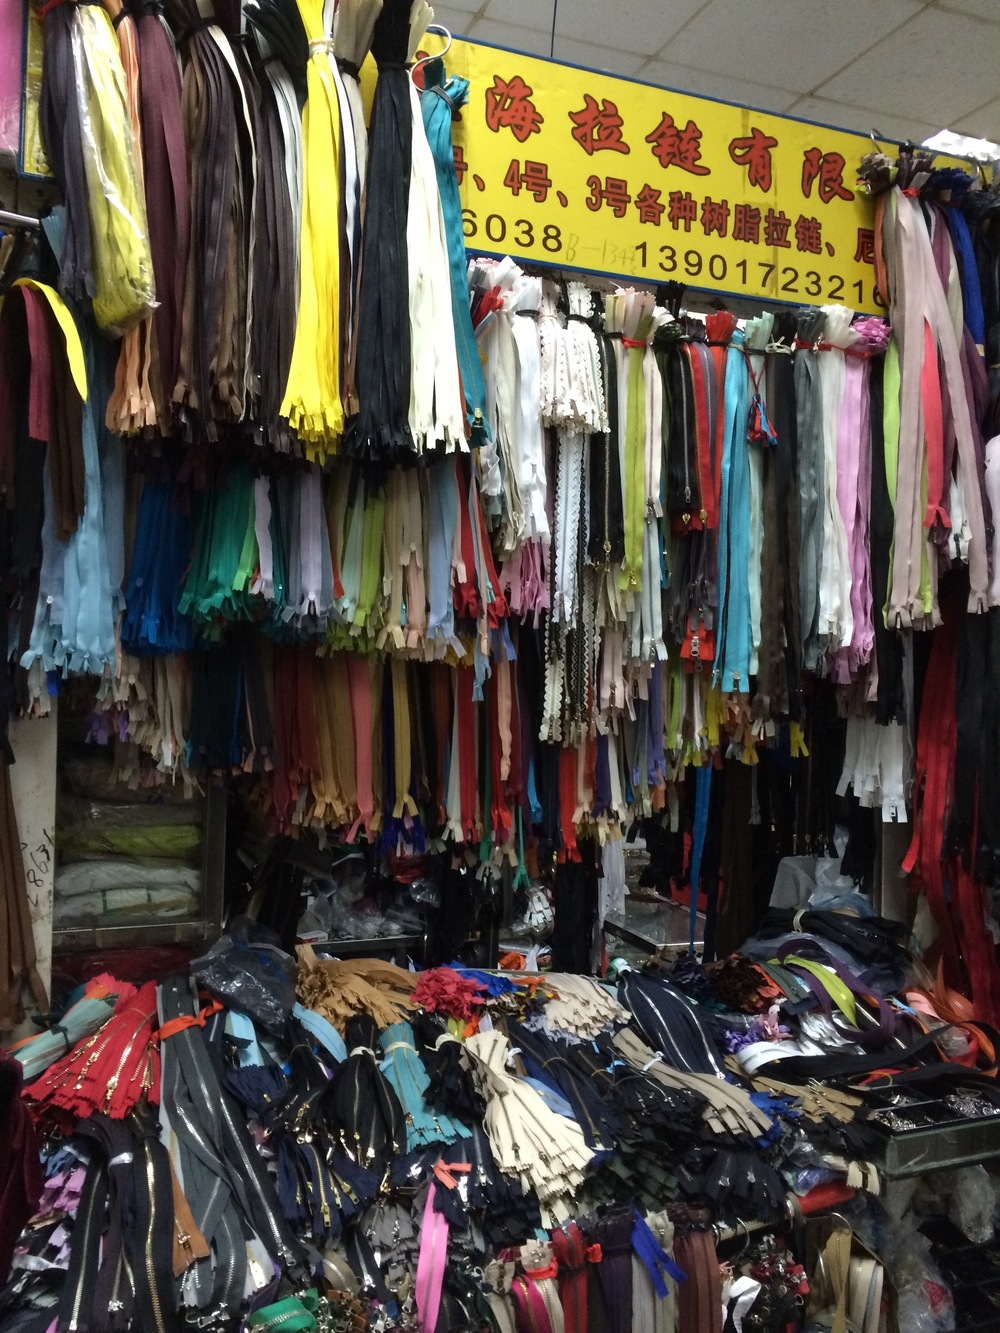 One vendor's booth in the warehouse where you went for trim.